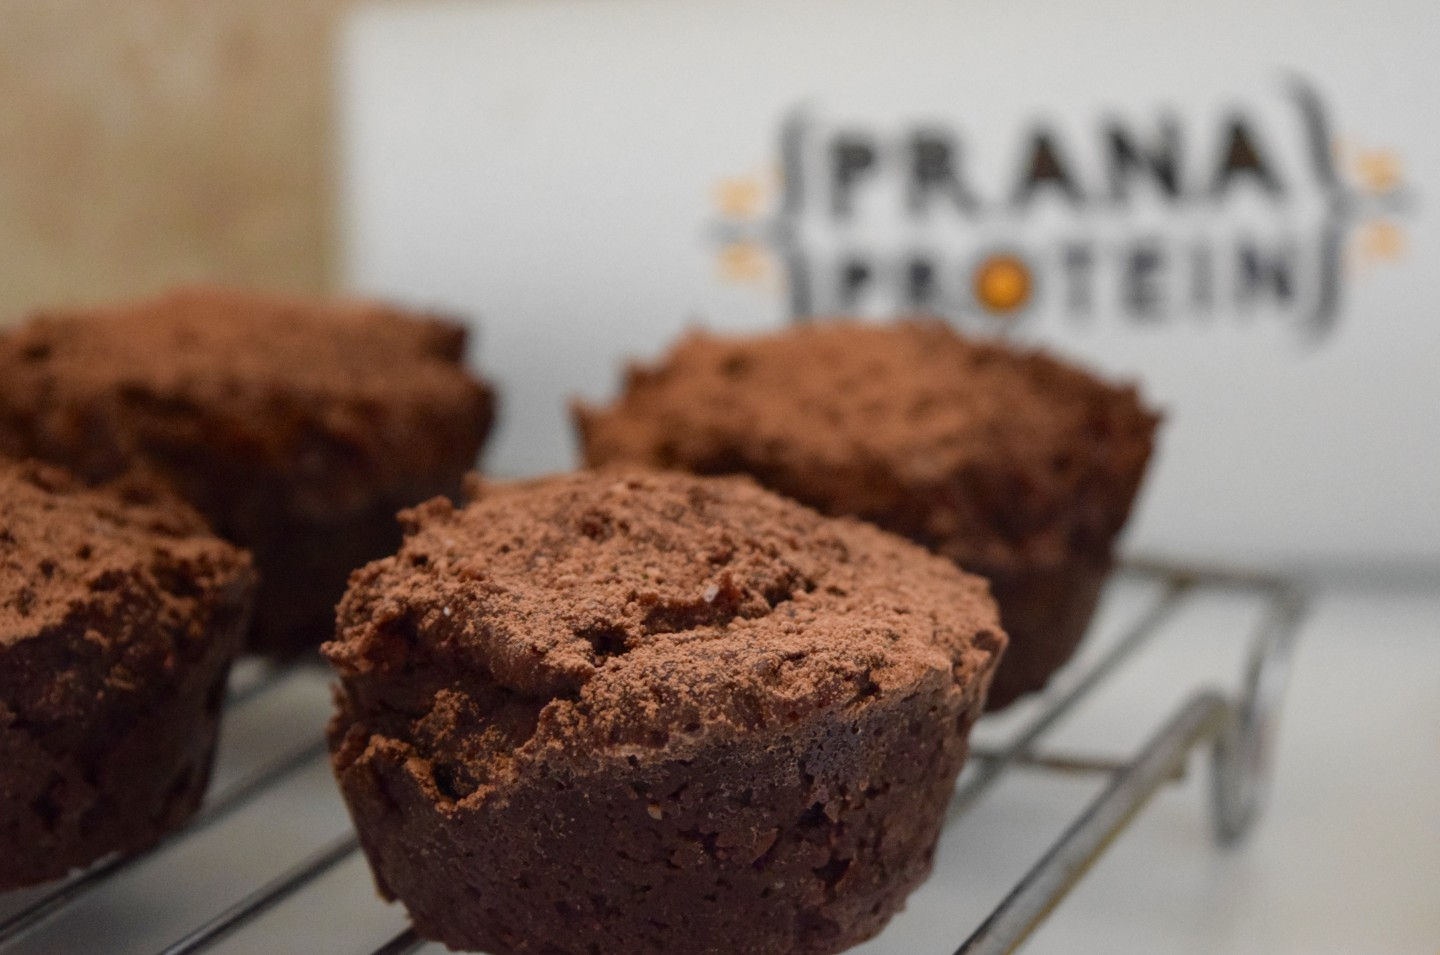 Chocolate Protein Muffin Recipe with Prana Protein